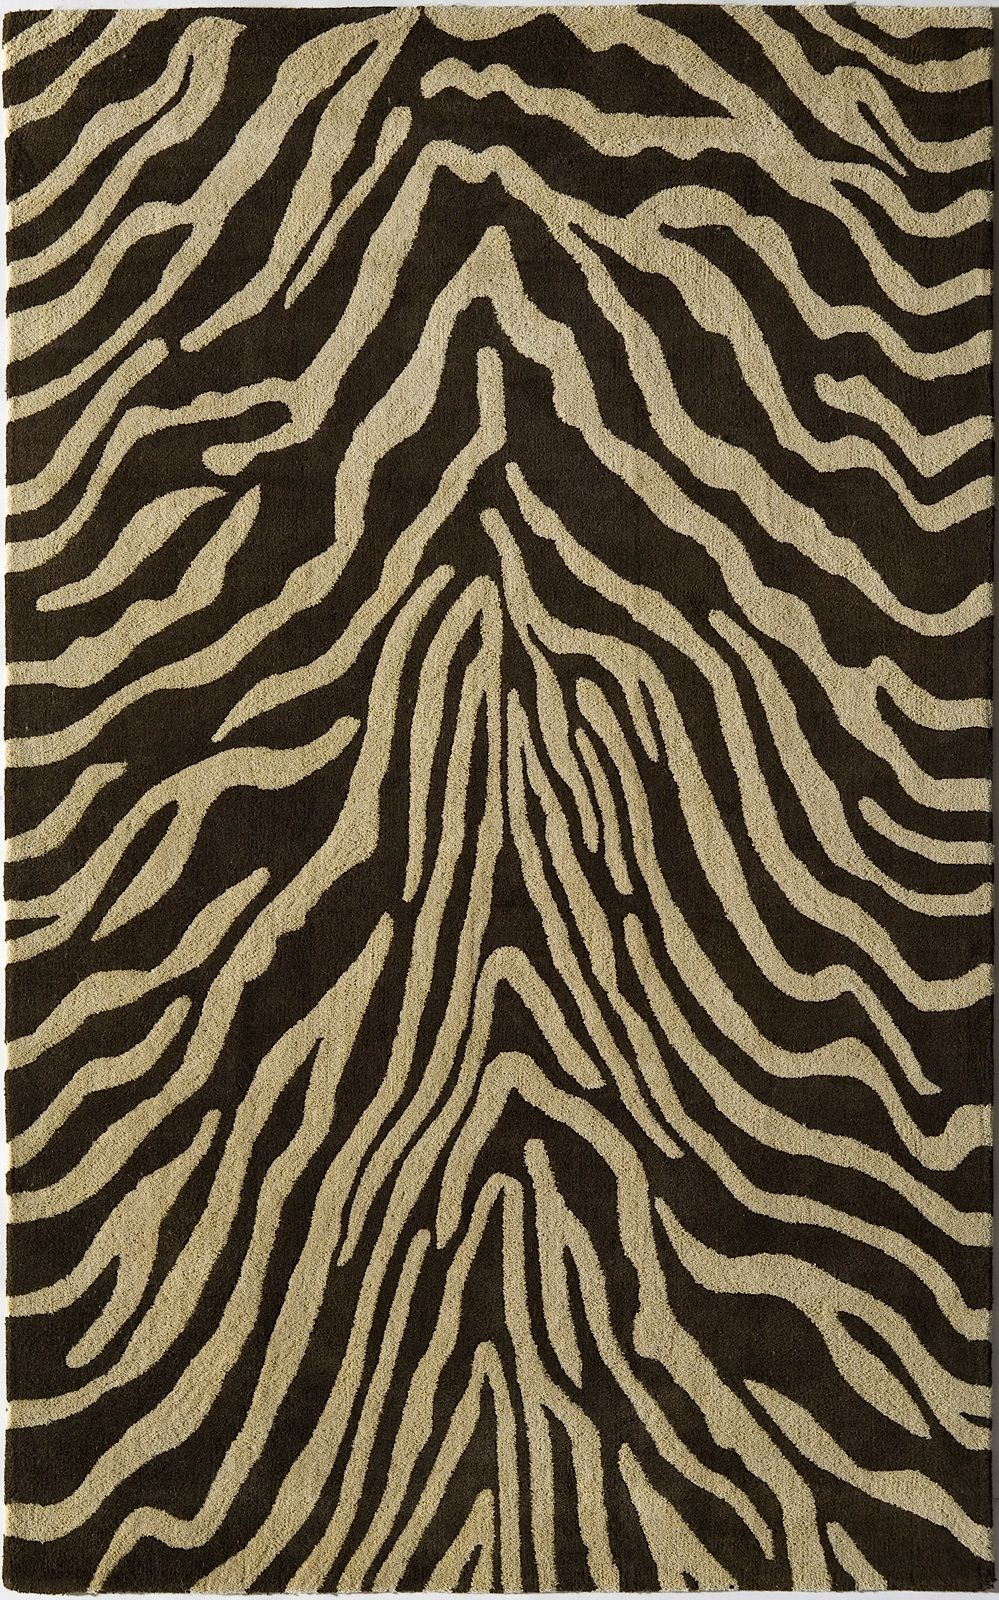 rugs america urban animal inspirations area rug collection